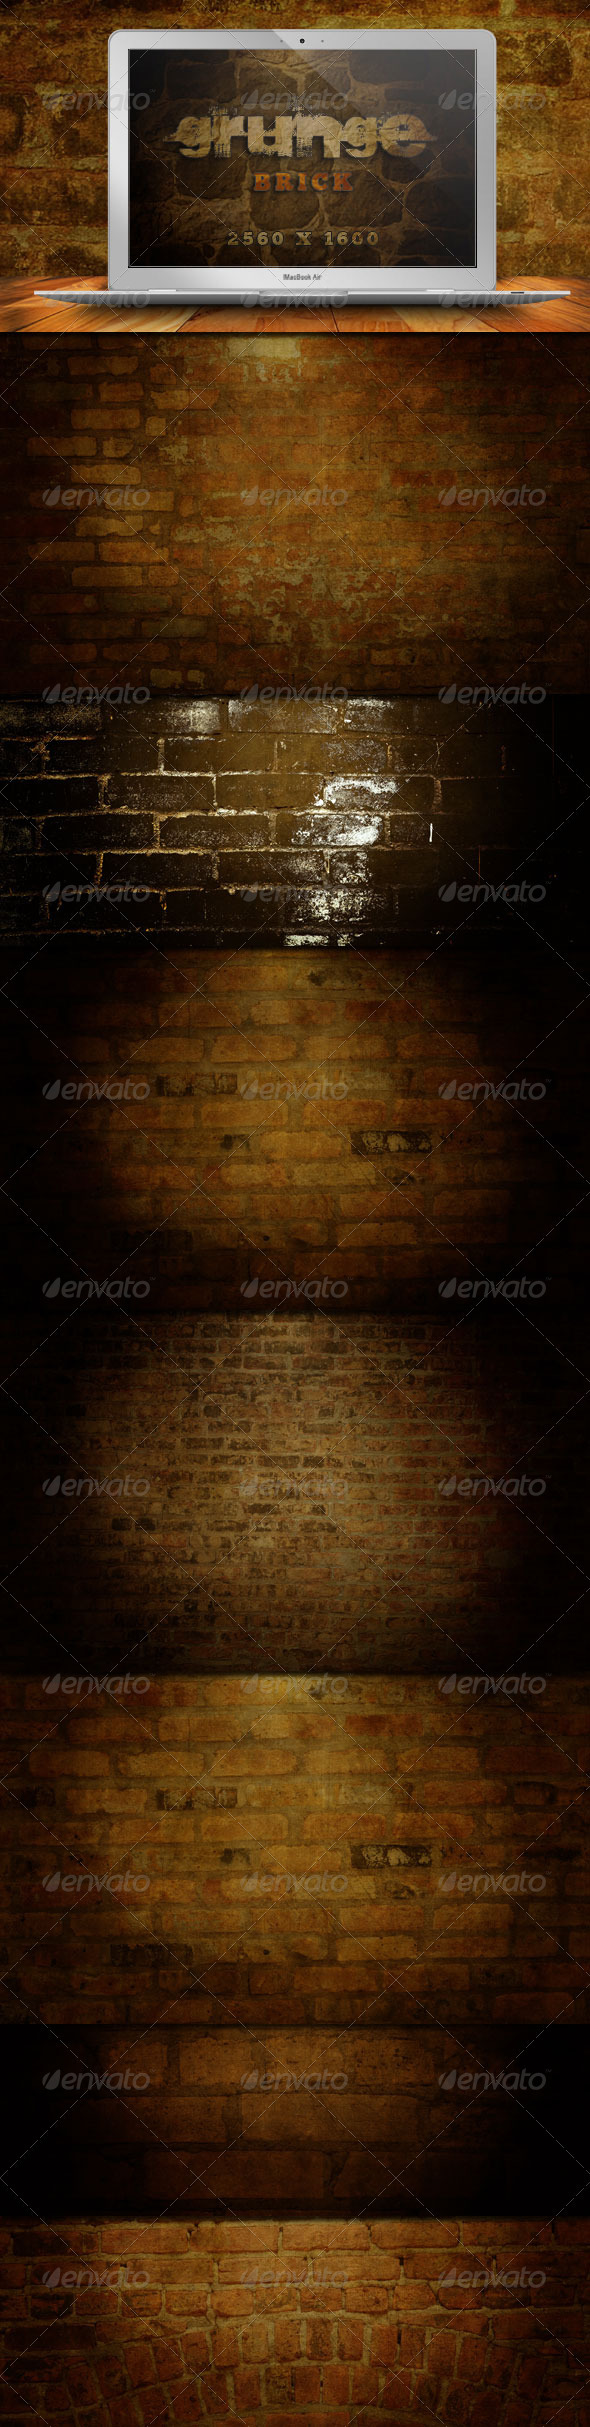 10 Grunge Brick Backgrounds - Backgrounds Graphics